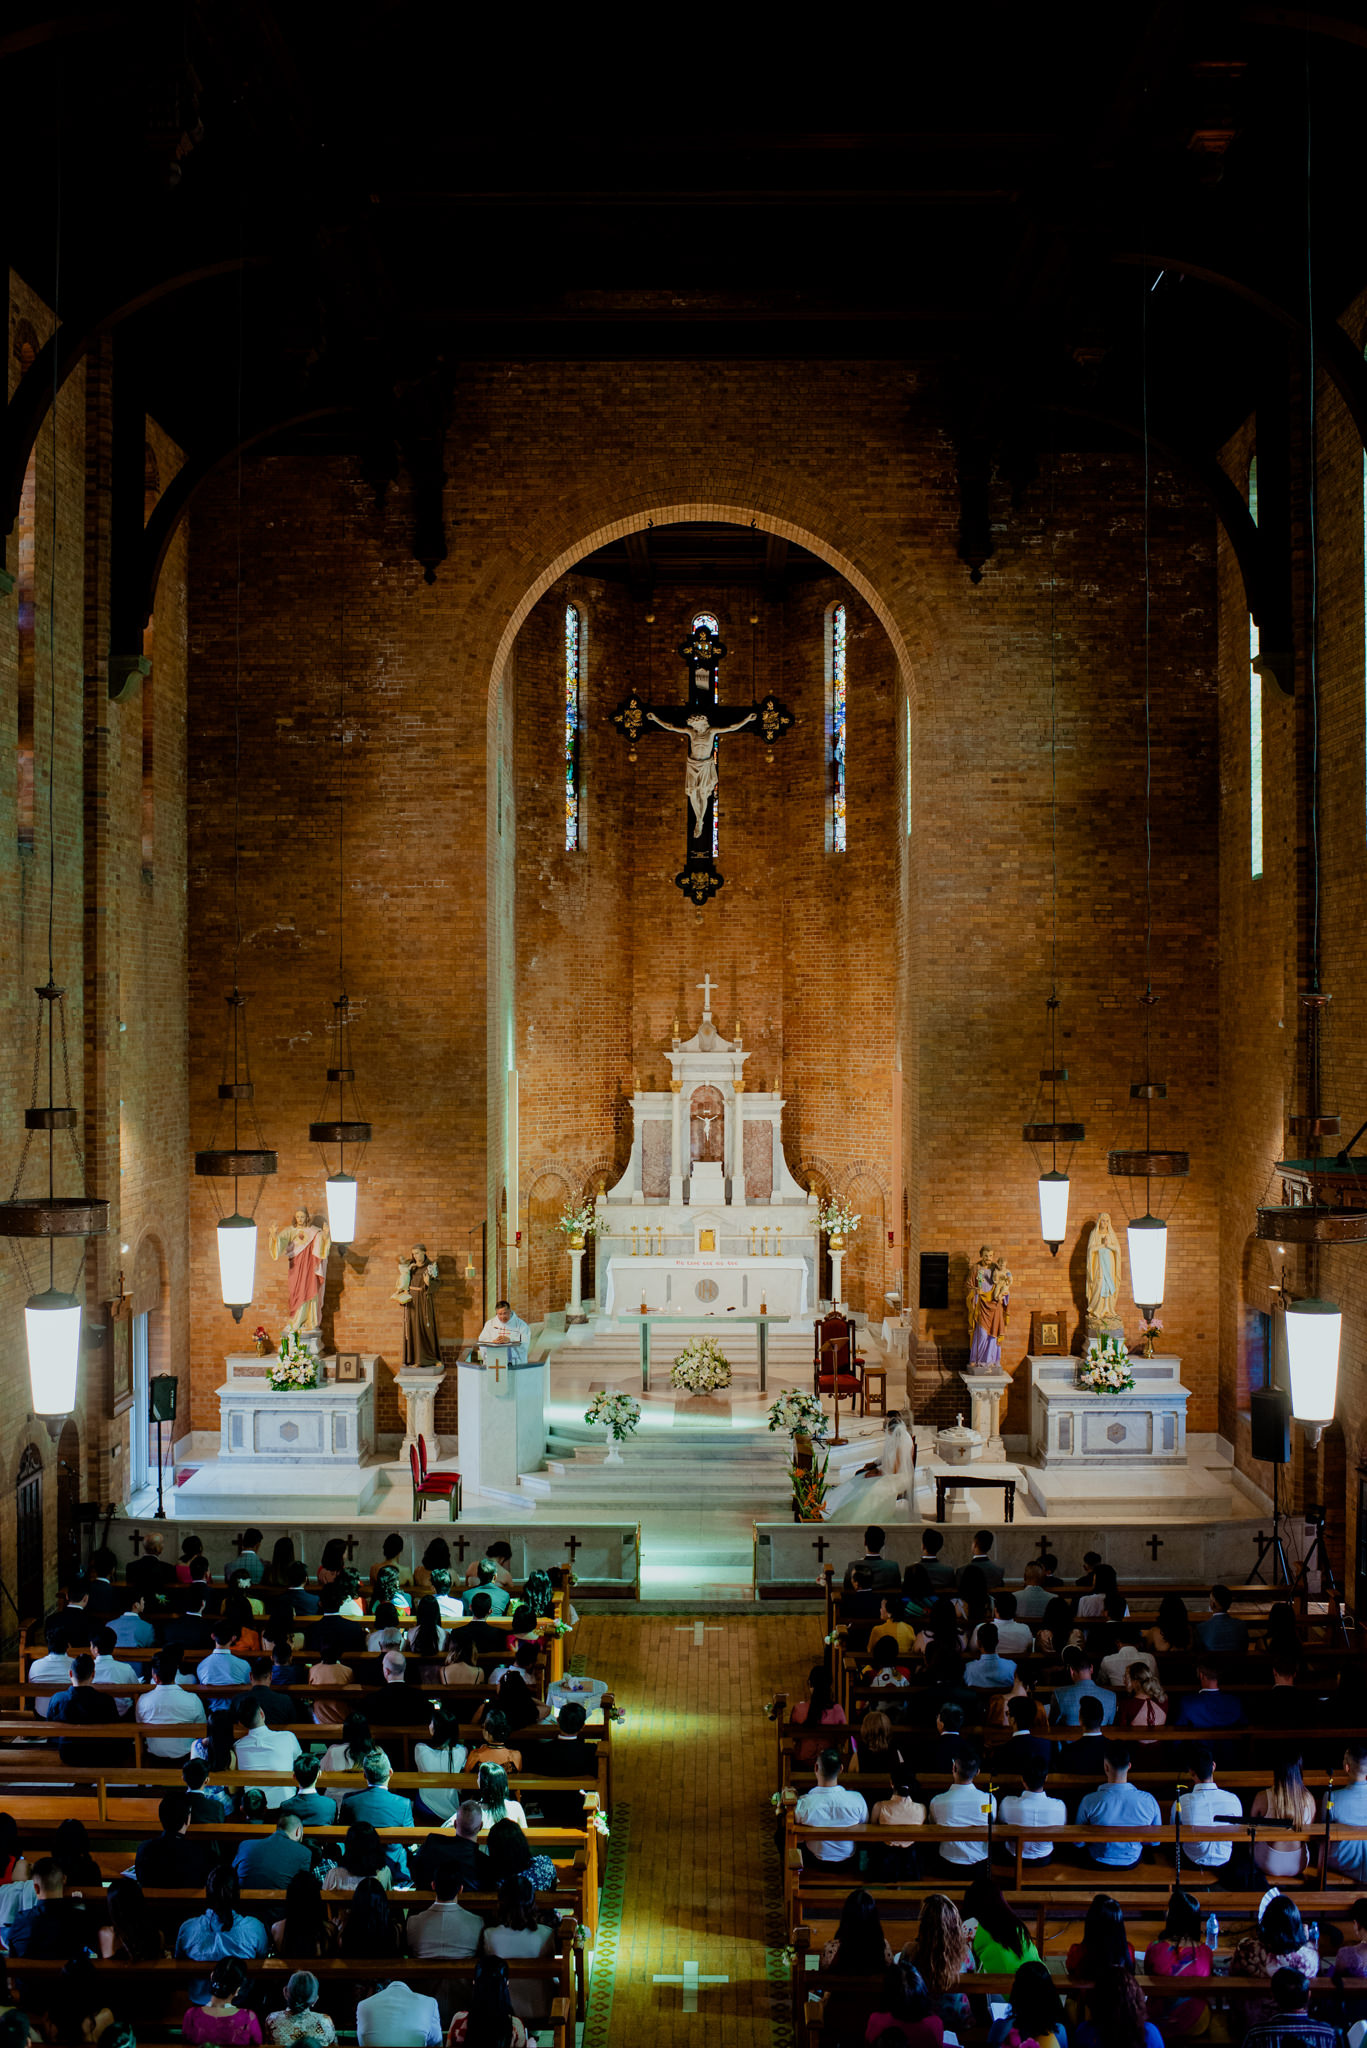 The interior of an old brick Catholic church during a wedding ceremony